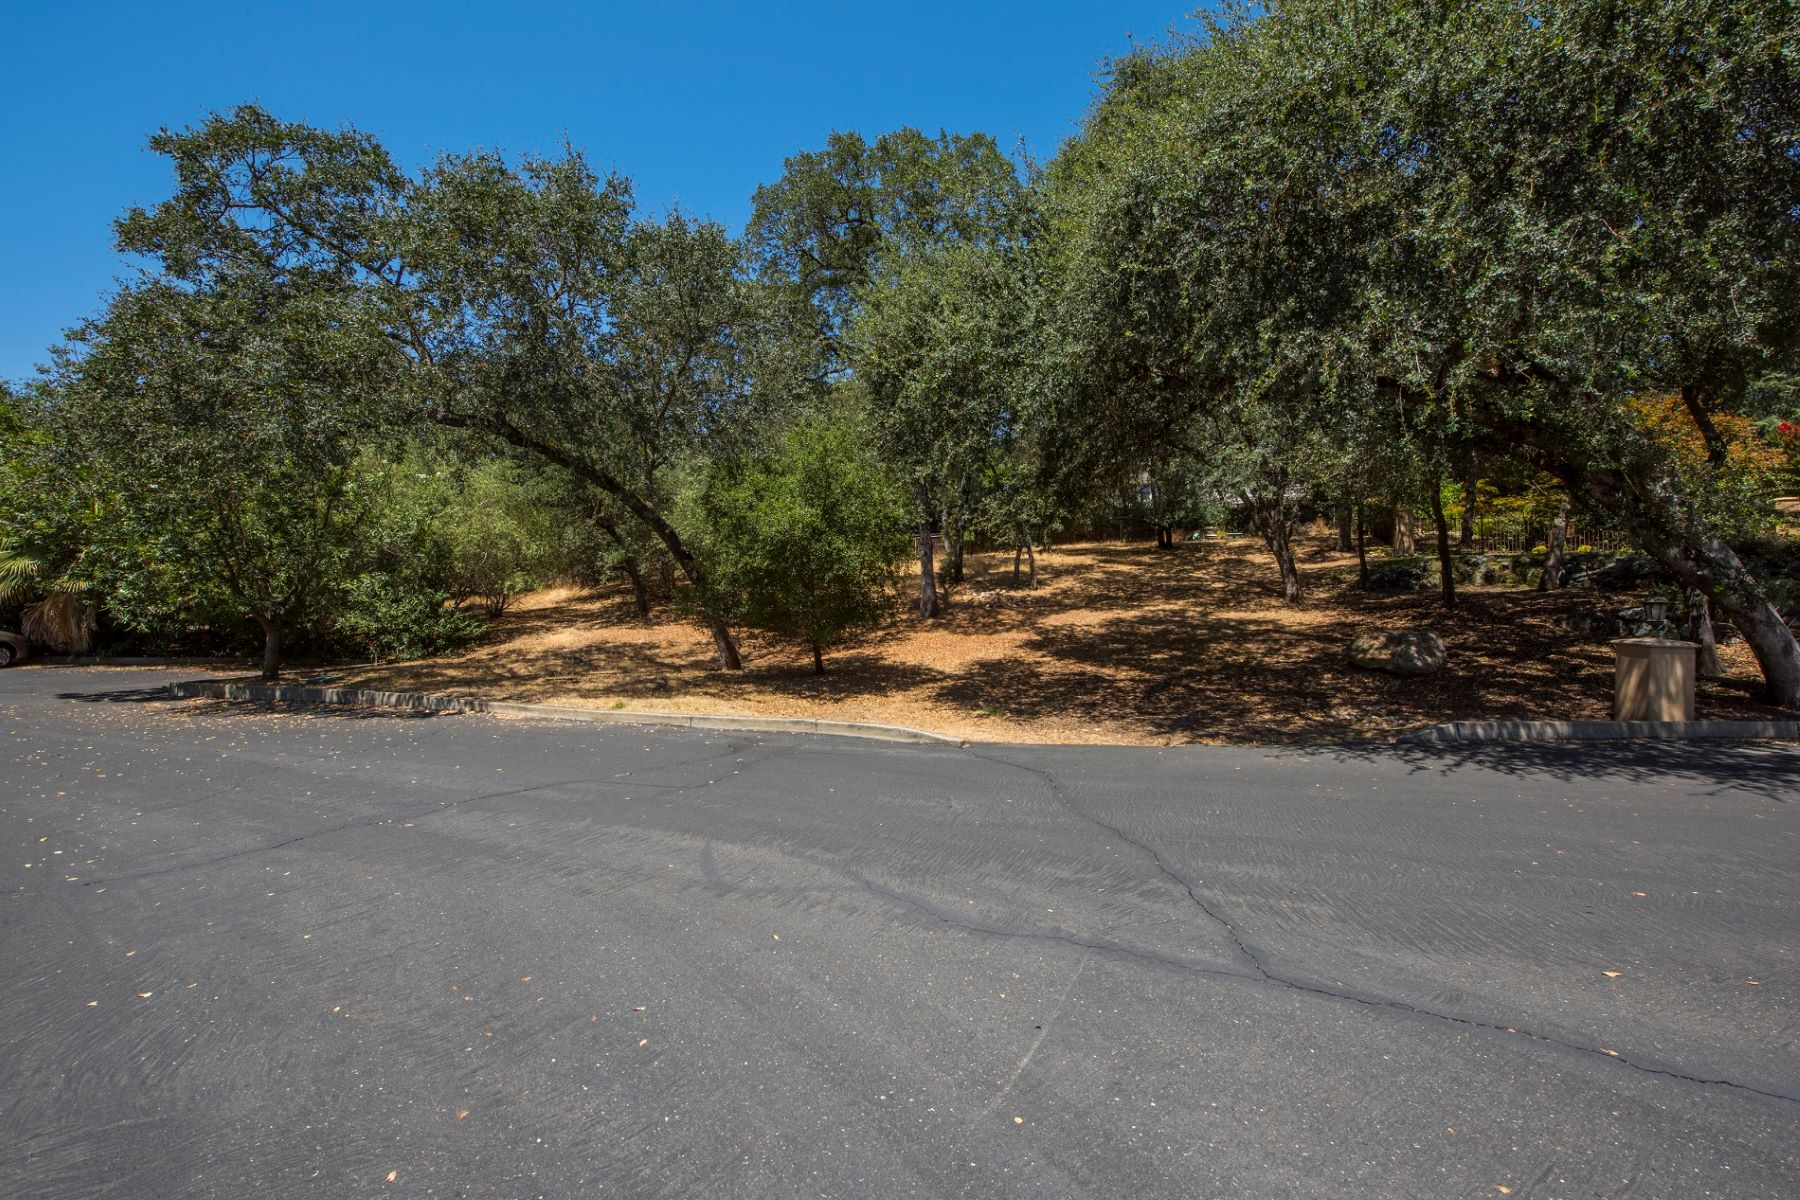 Land for Sale at 8739 Noland Lane, Fair Oaks, CA 95628 8739 Noland Lane Fair Oaks, California 95628 United States